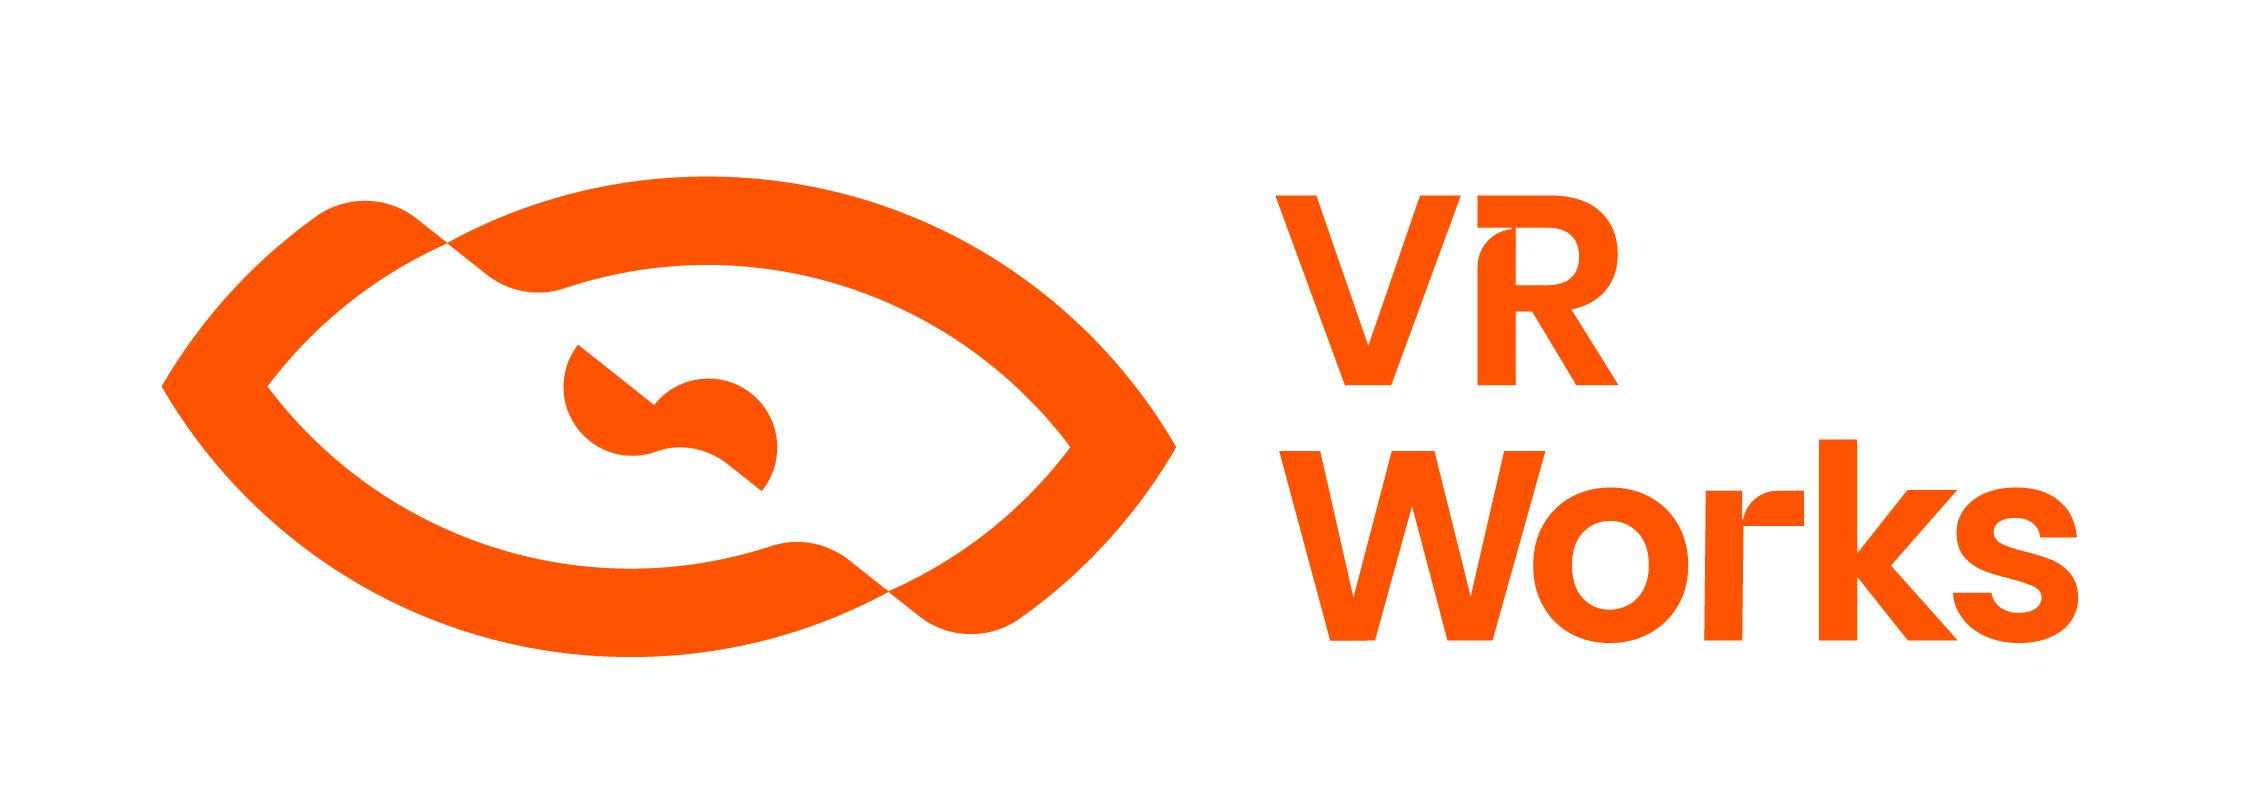 VR Works - Making VR Work for Enterprises through Well-defined & Proven Use Cases